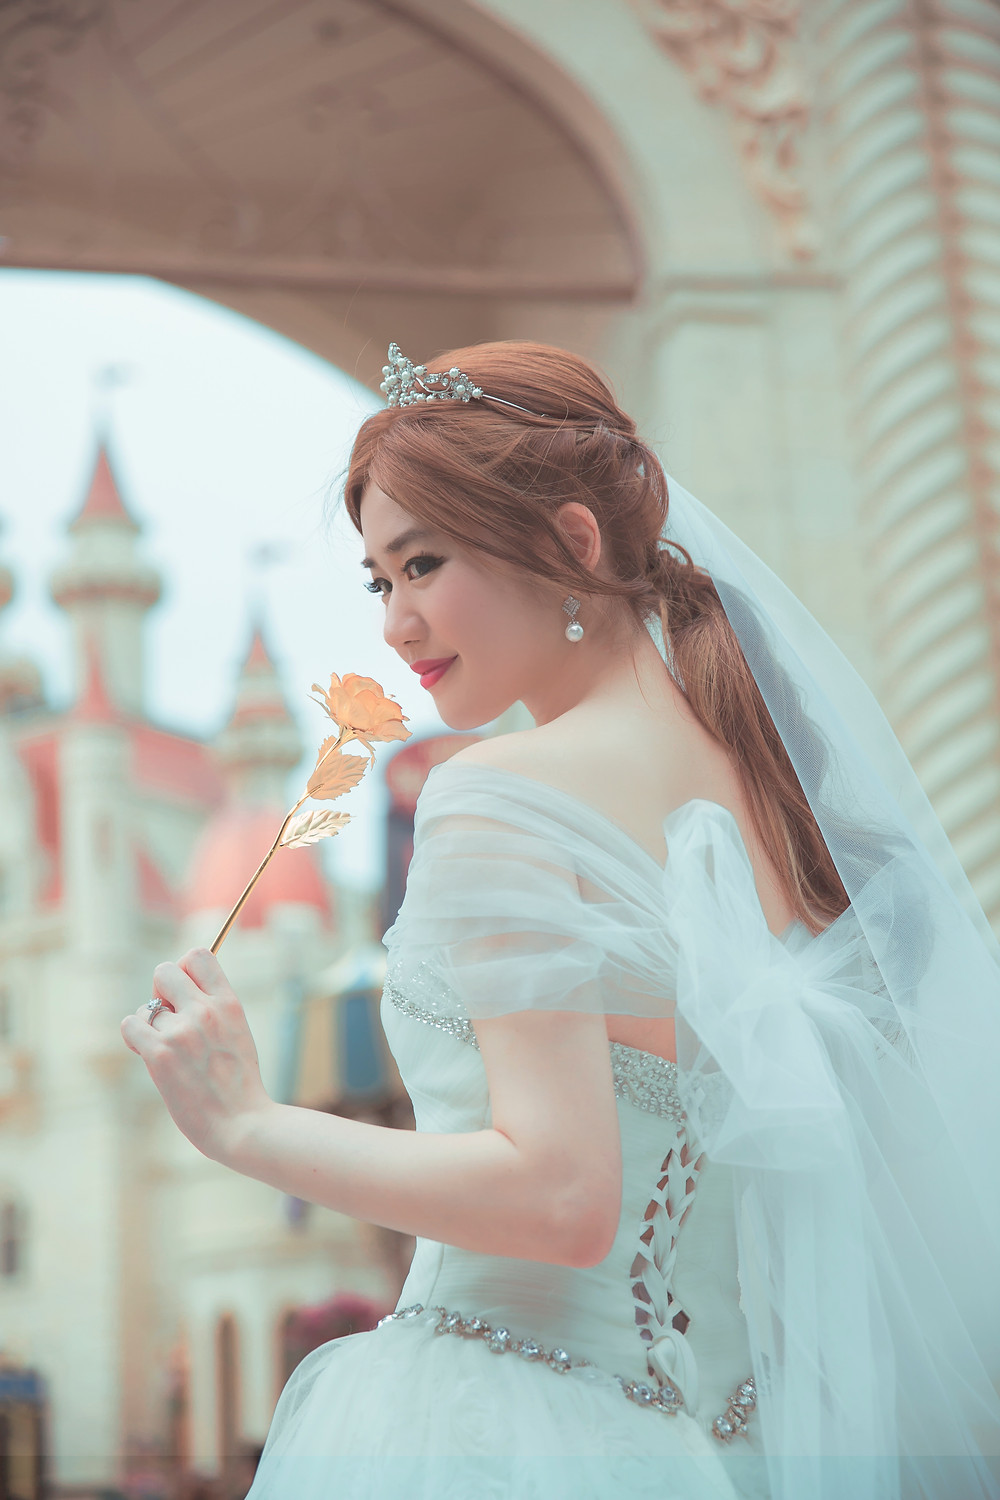 Beauty and the beast wedding belle